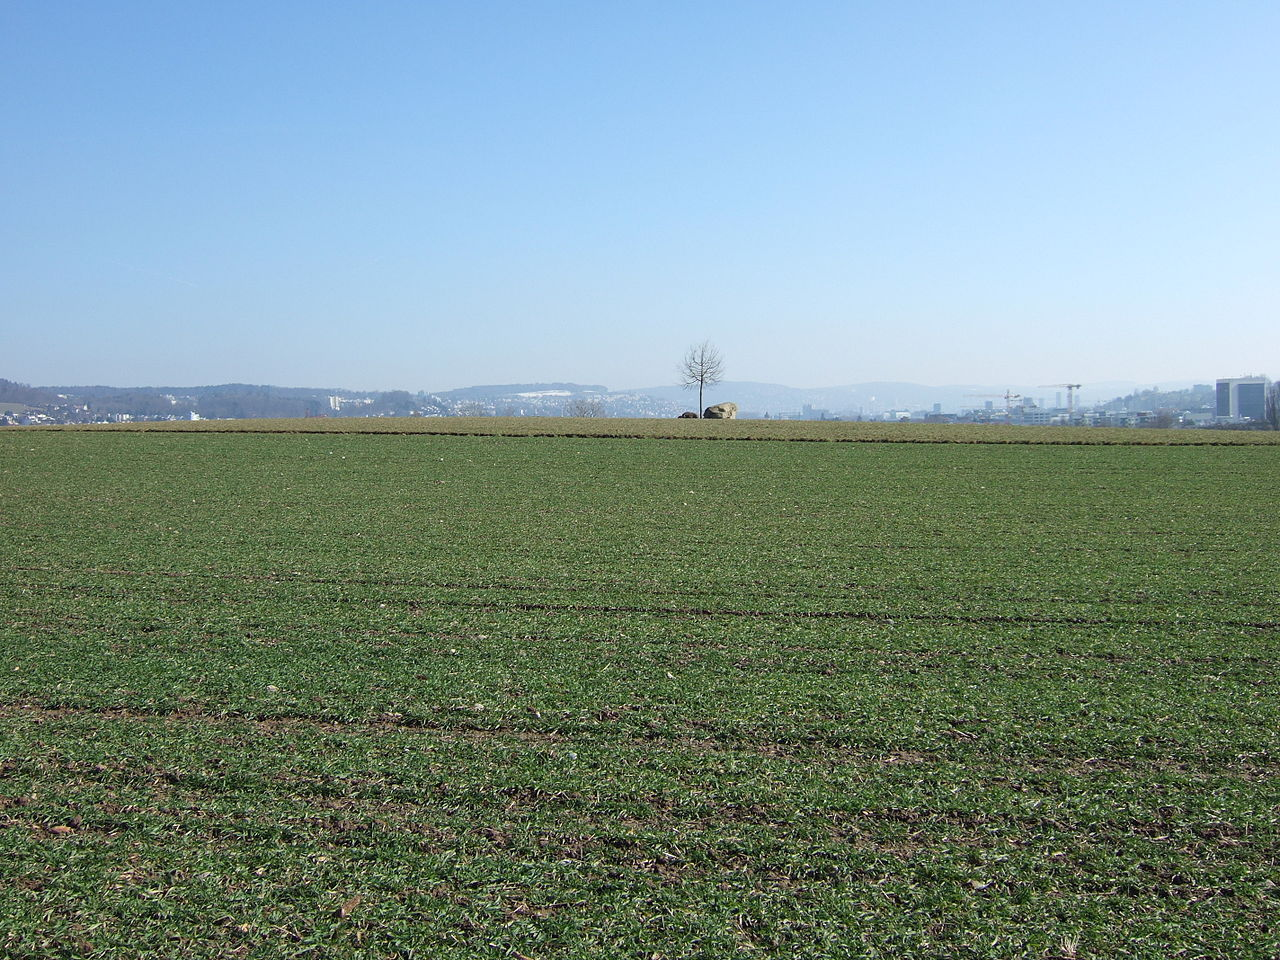 File:Green Field With East Limmattal Skyline In Background